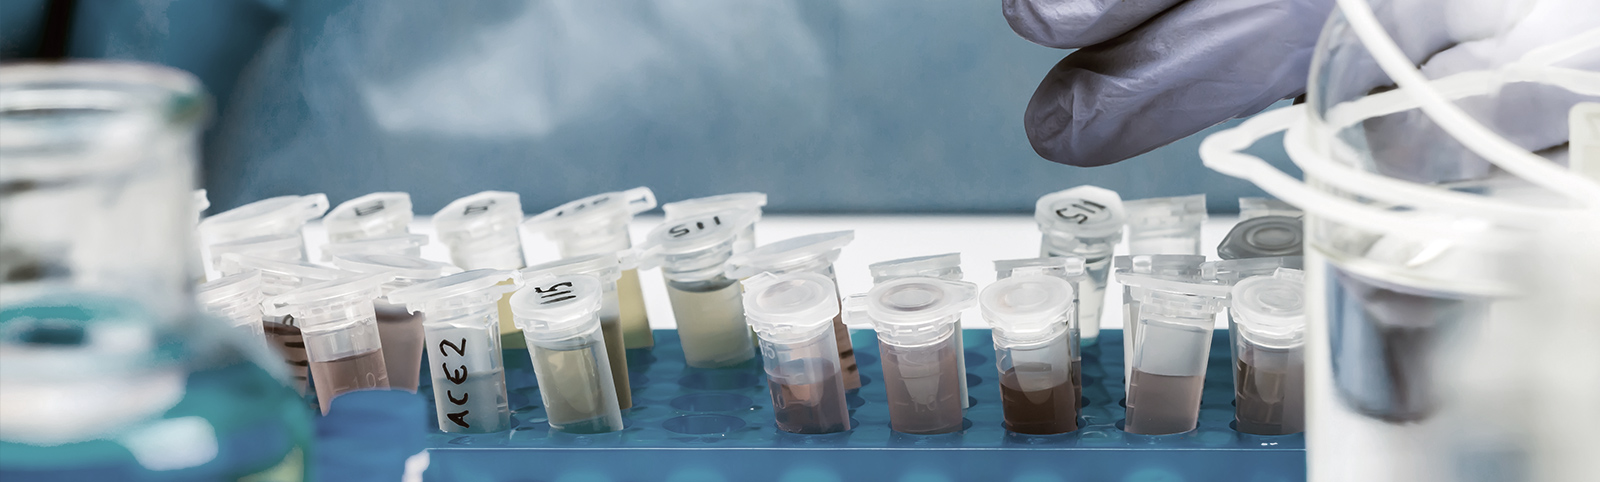 Covid-19 Wastewater testing